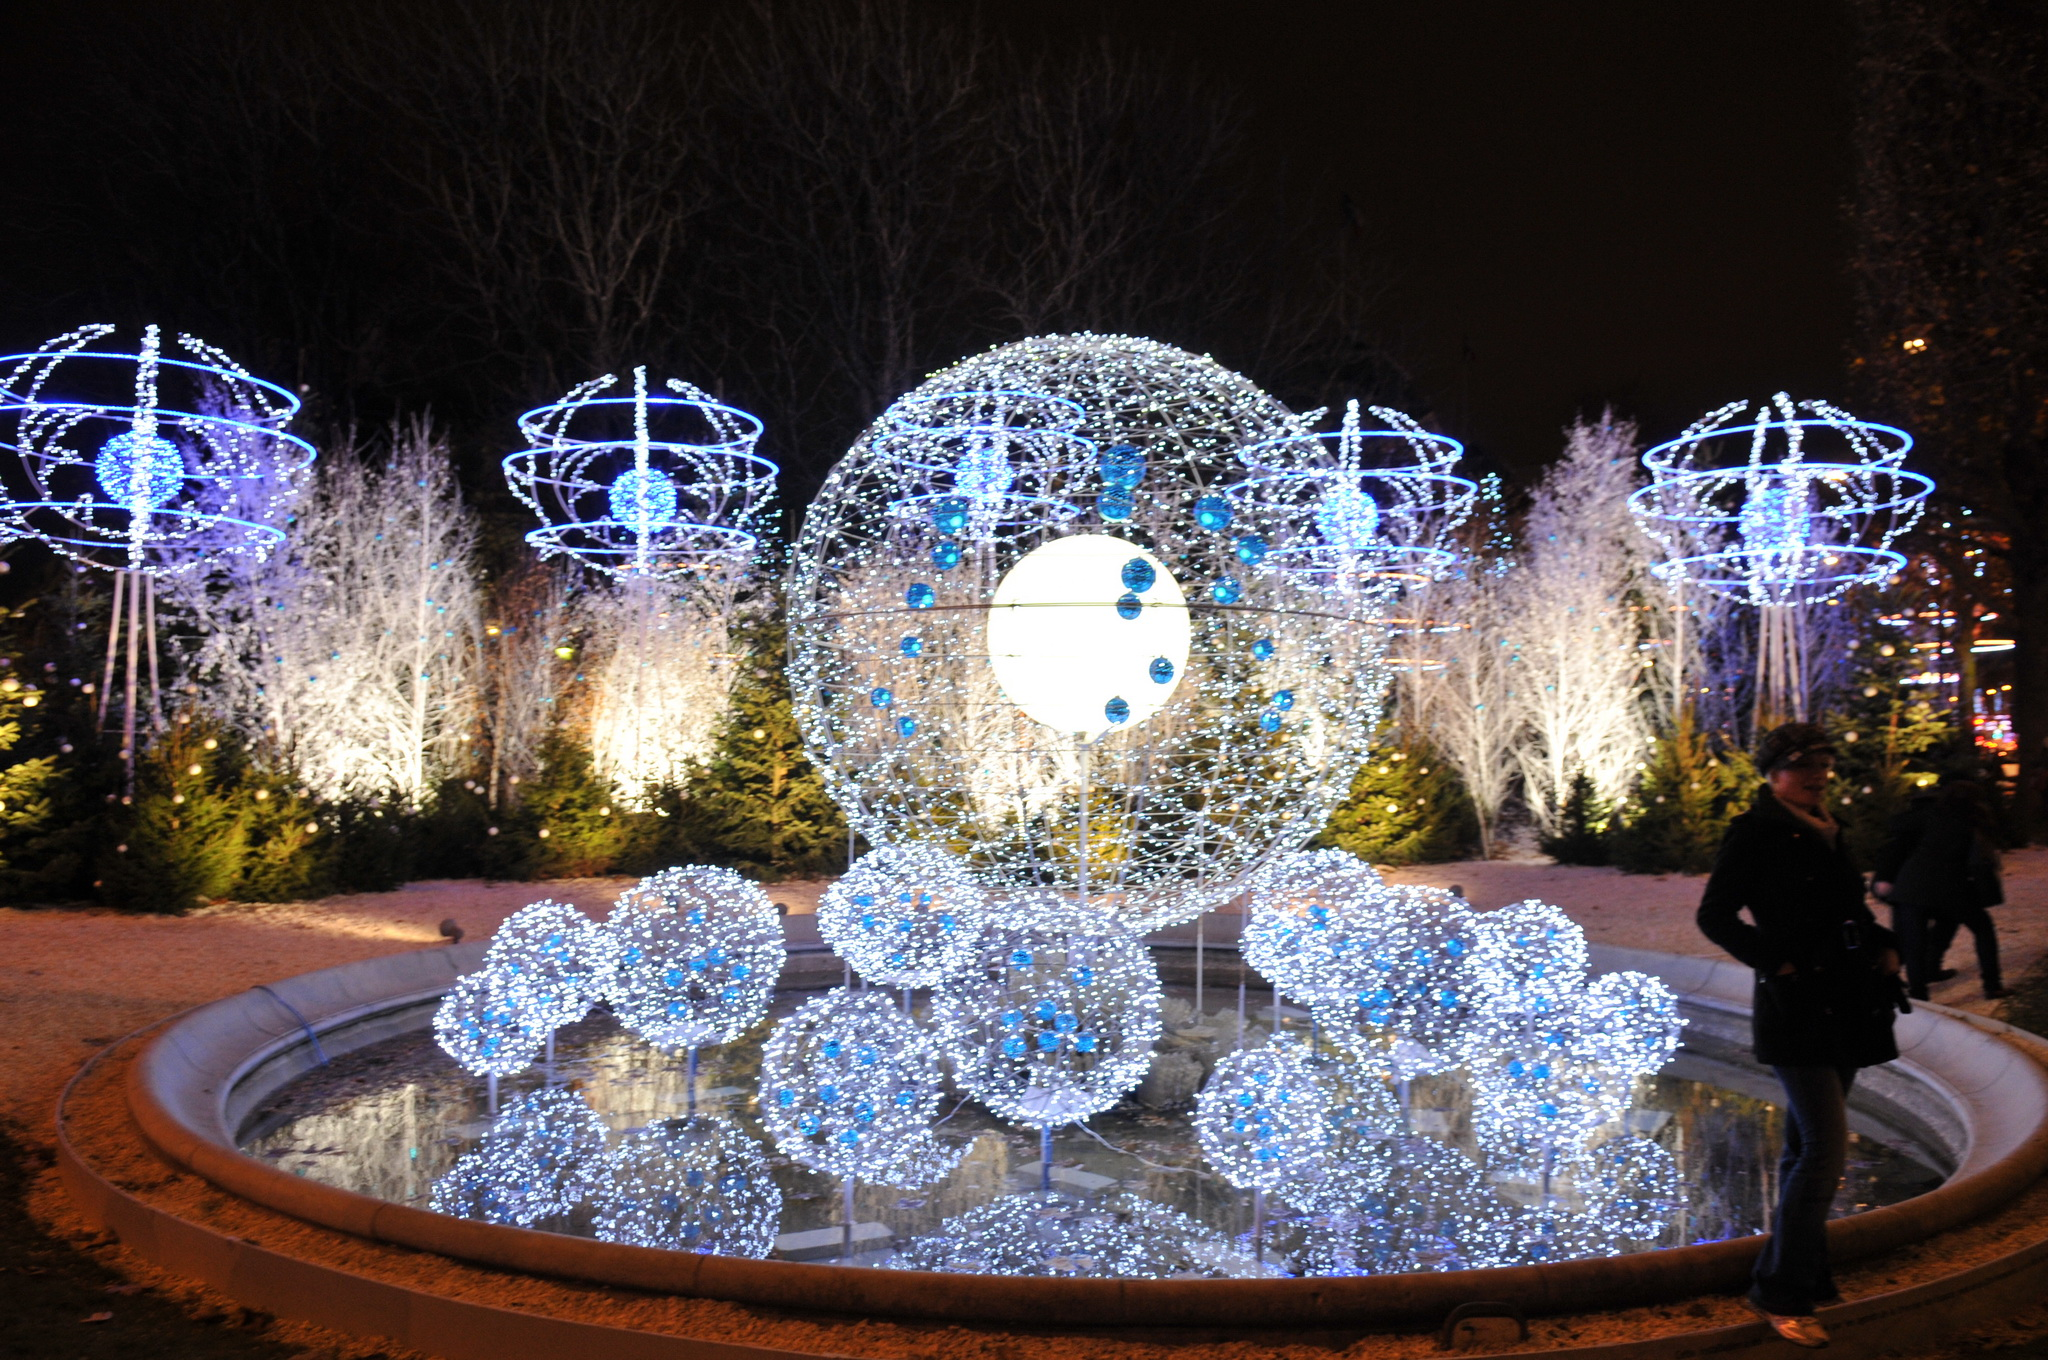 #6C3A24 Champs Elyséee 2012 Christmas Pinterest Champs 5365 decorations de noel champs elysees 2048x1360 px @ aertt.com